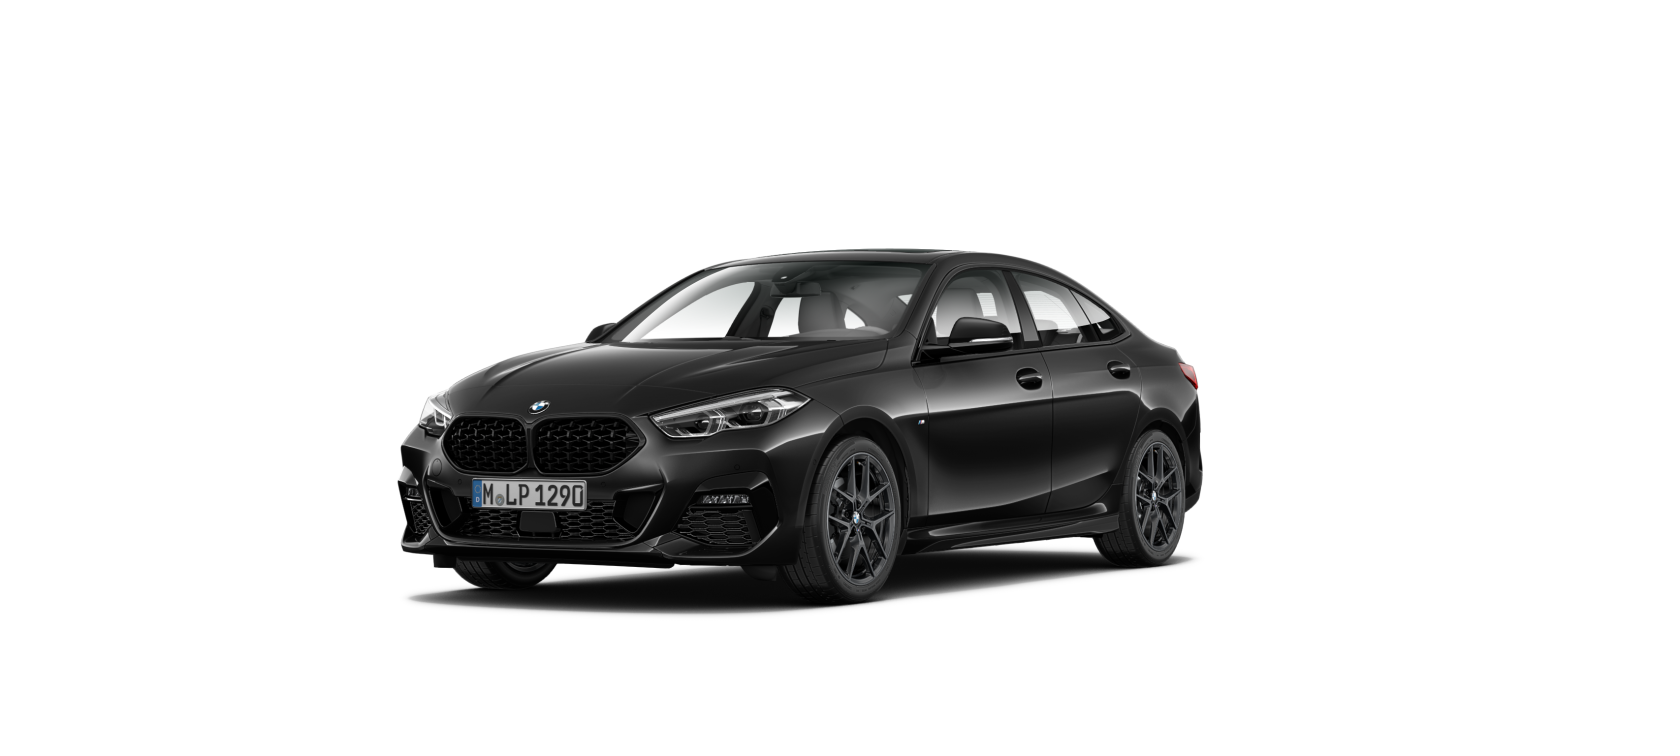 Bmw 2 Series Gran Coupe Black Shadow Edition Launched In India Toento